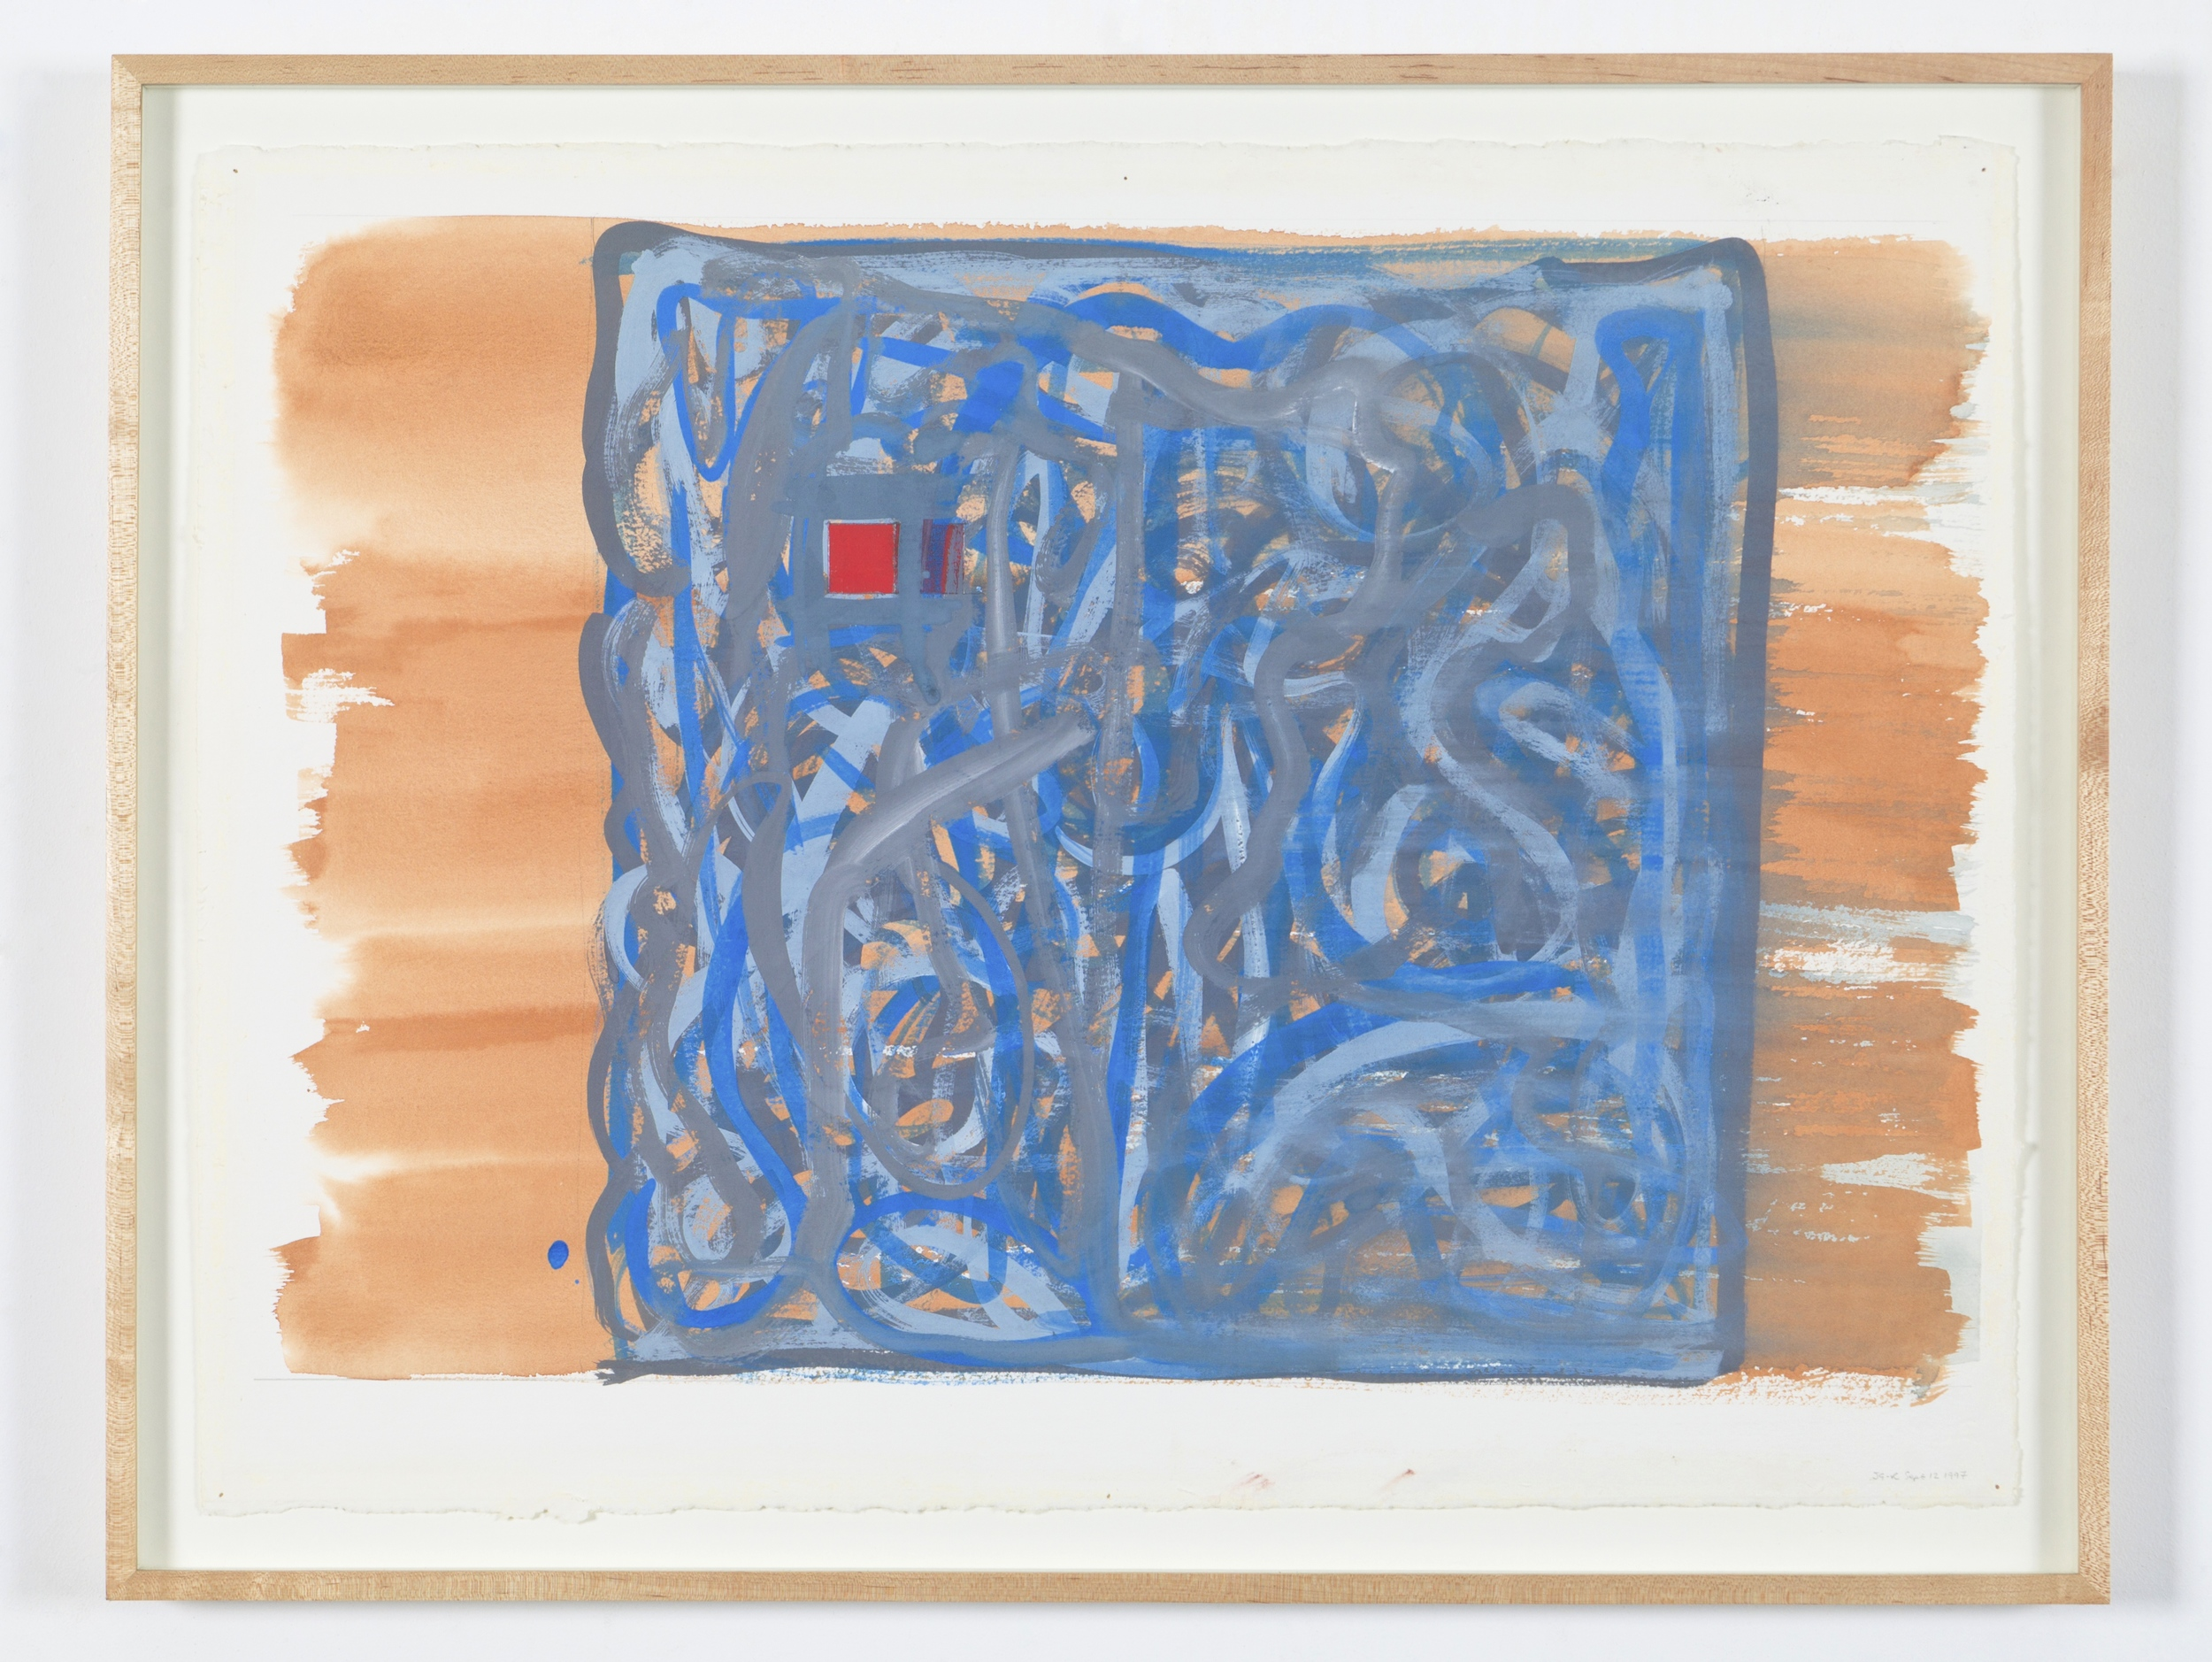 "Untitiled (Sept. 12 1997), 1997, goauche on paper, 1997, 25 1/4""x33"" (framed)"